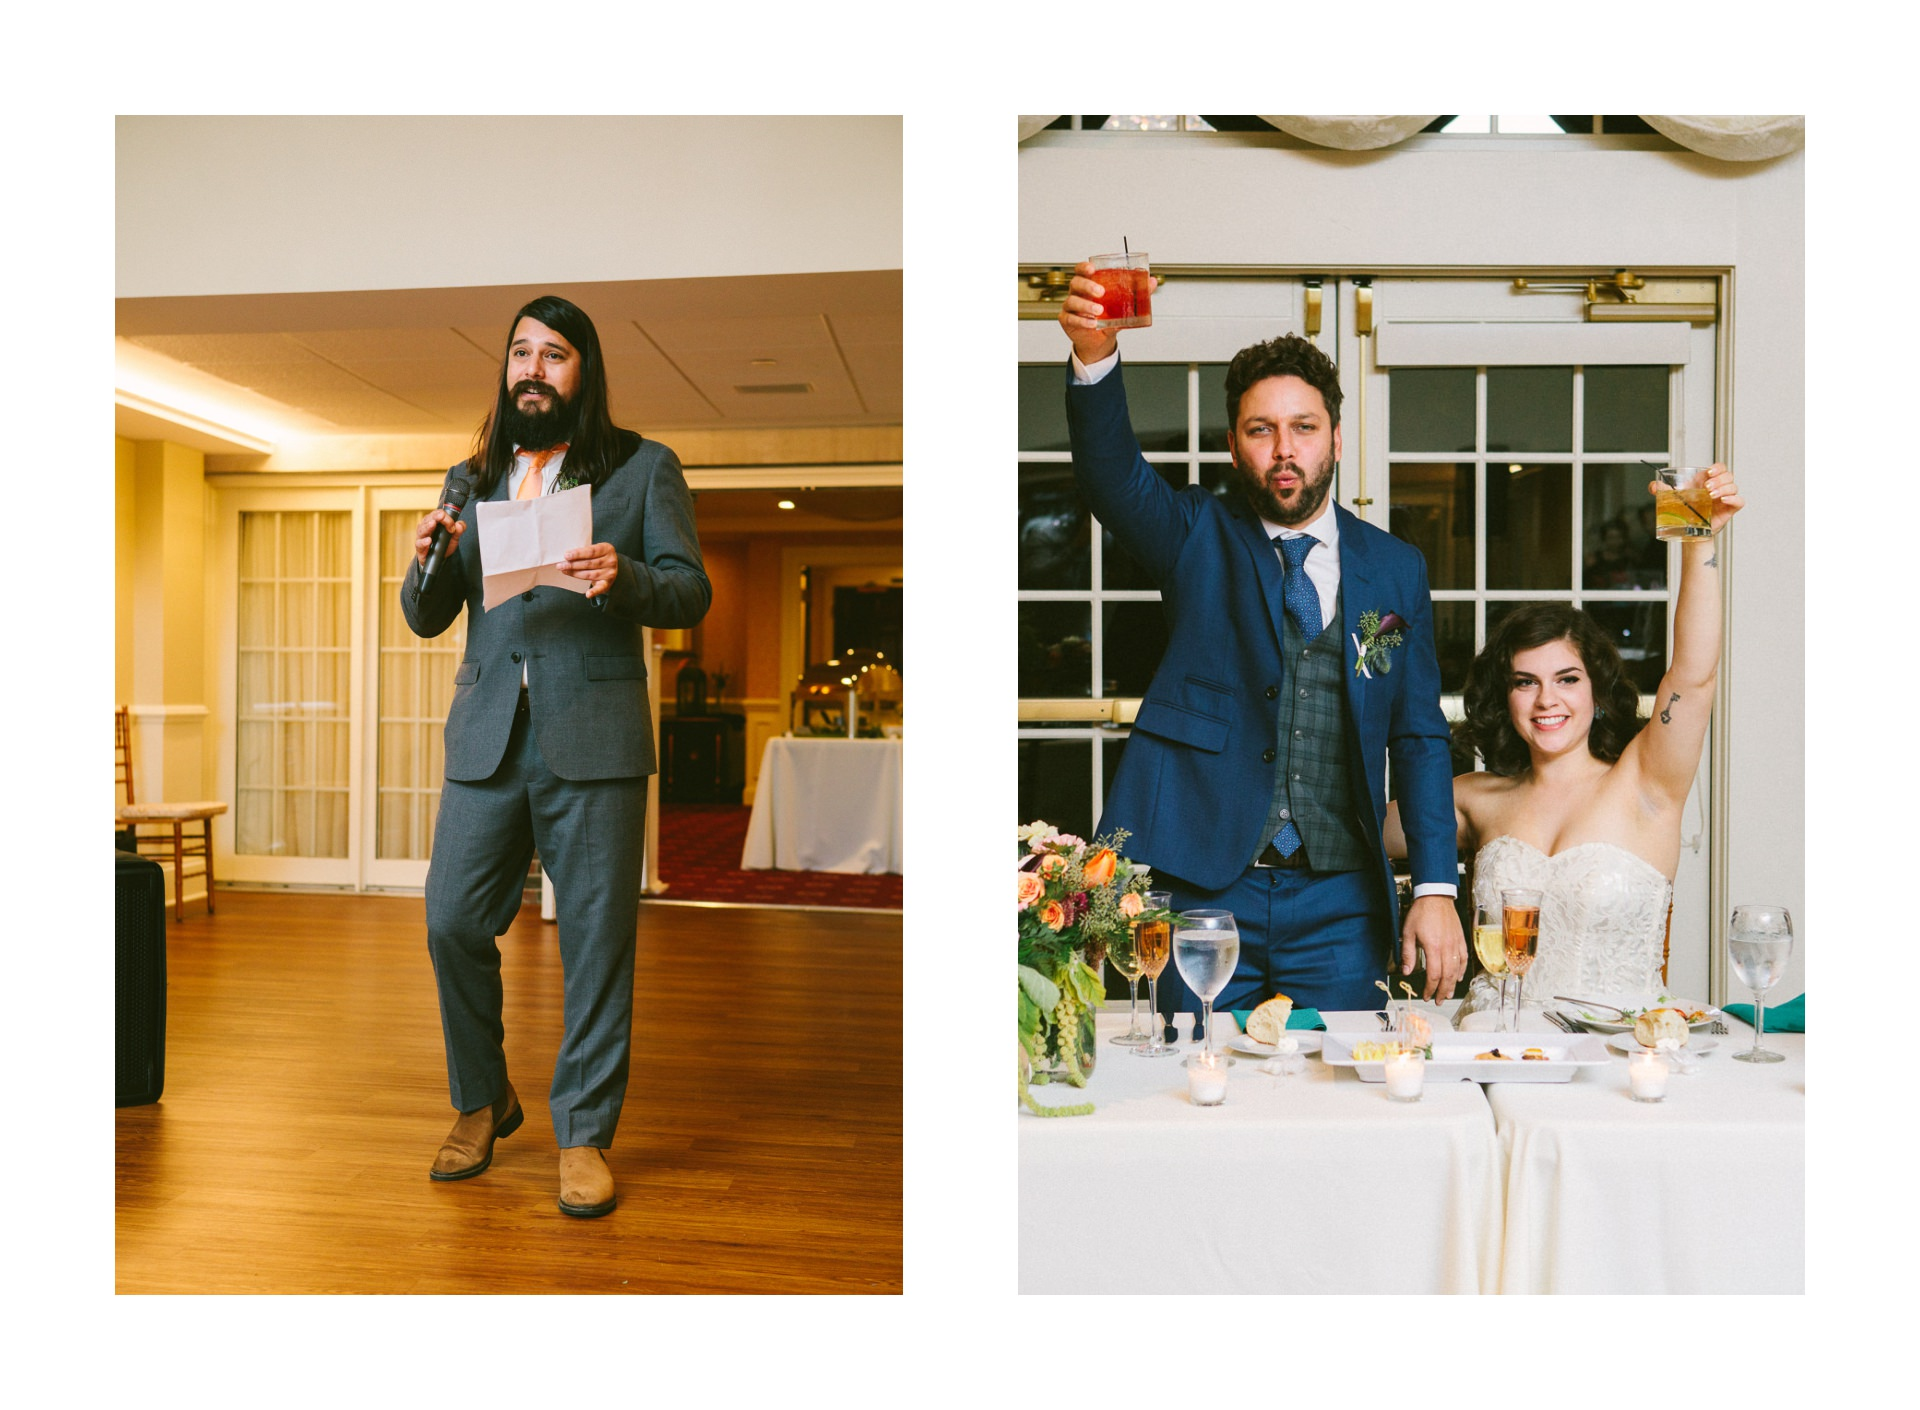 Wedding at the Glidden House in Cleveland 2 32.jpg